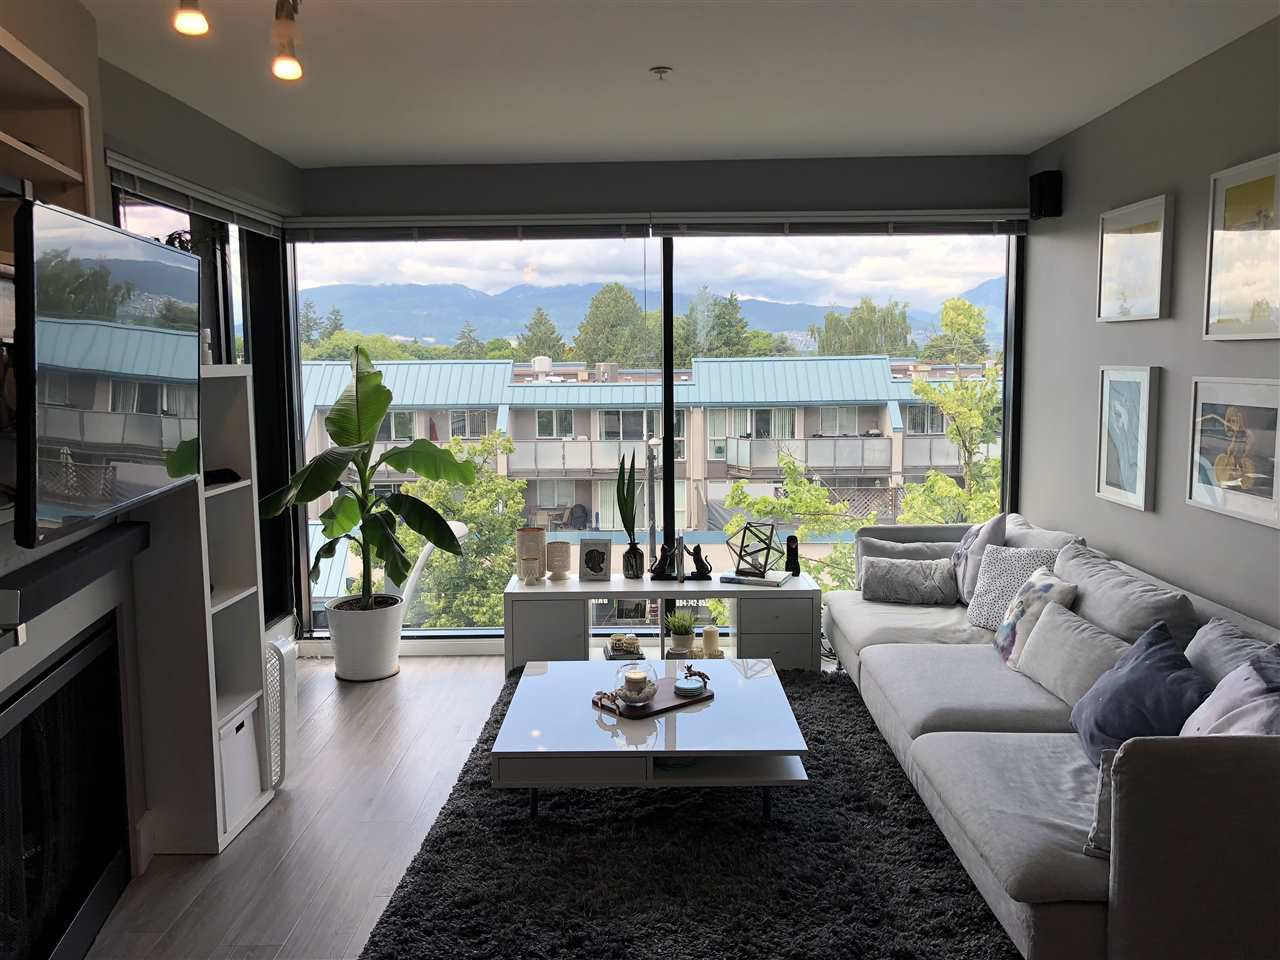 Photo 2: Photos: 404 2525 BLENHEIM Street in Vancouver: Kitsilano Condo for sale (Vancouver West)  : MLS®# R2278188